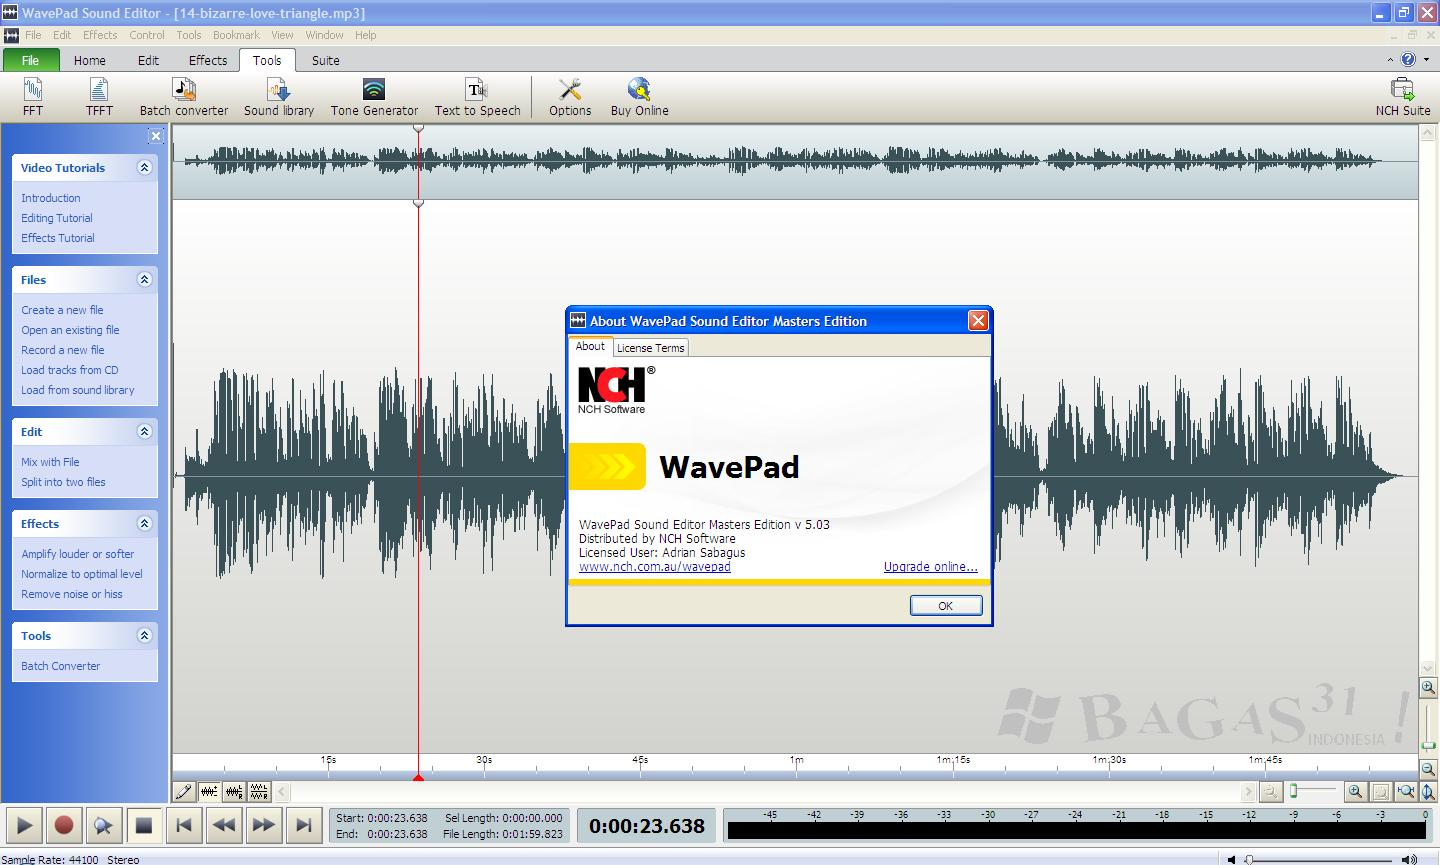 Wavepad Sound Editor Master Edition 5.03 + Keygen